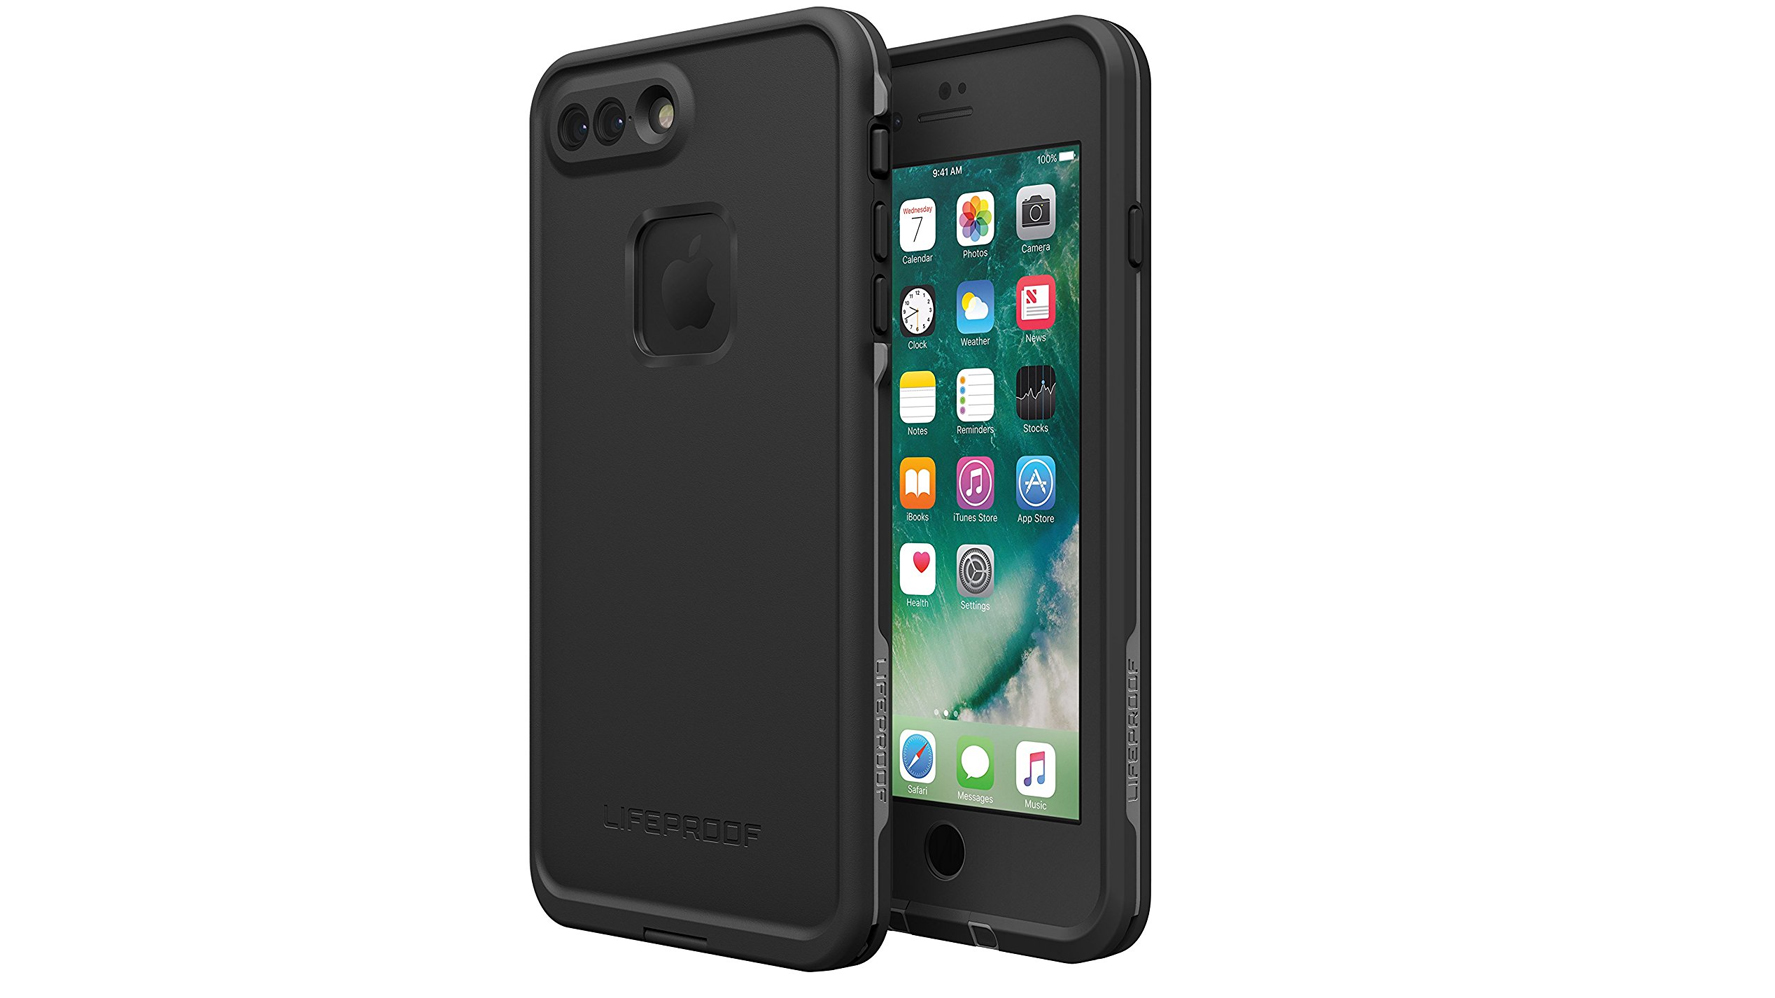 iSWEVQwfgPe9Zddd9VjdJd - The best iPhone 7 Plus cases